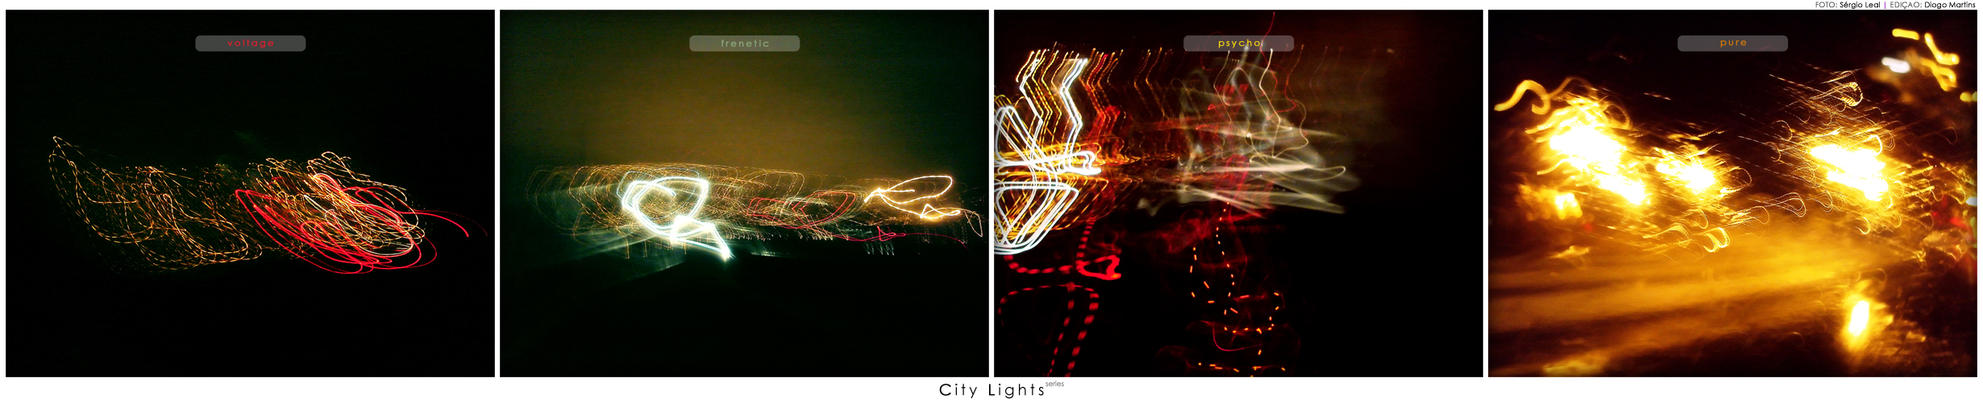 City lights by djtkd